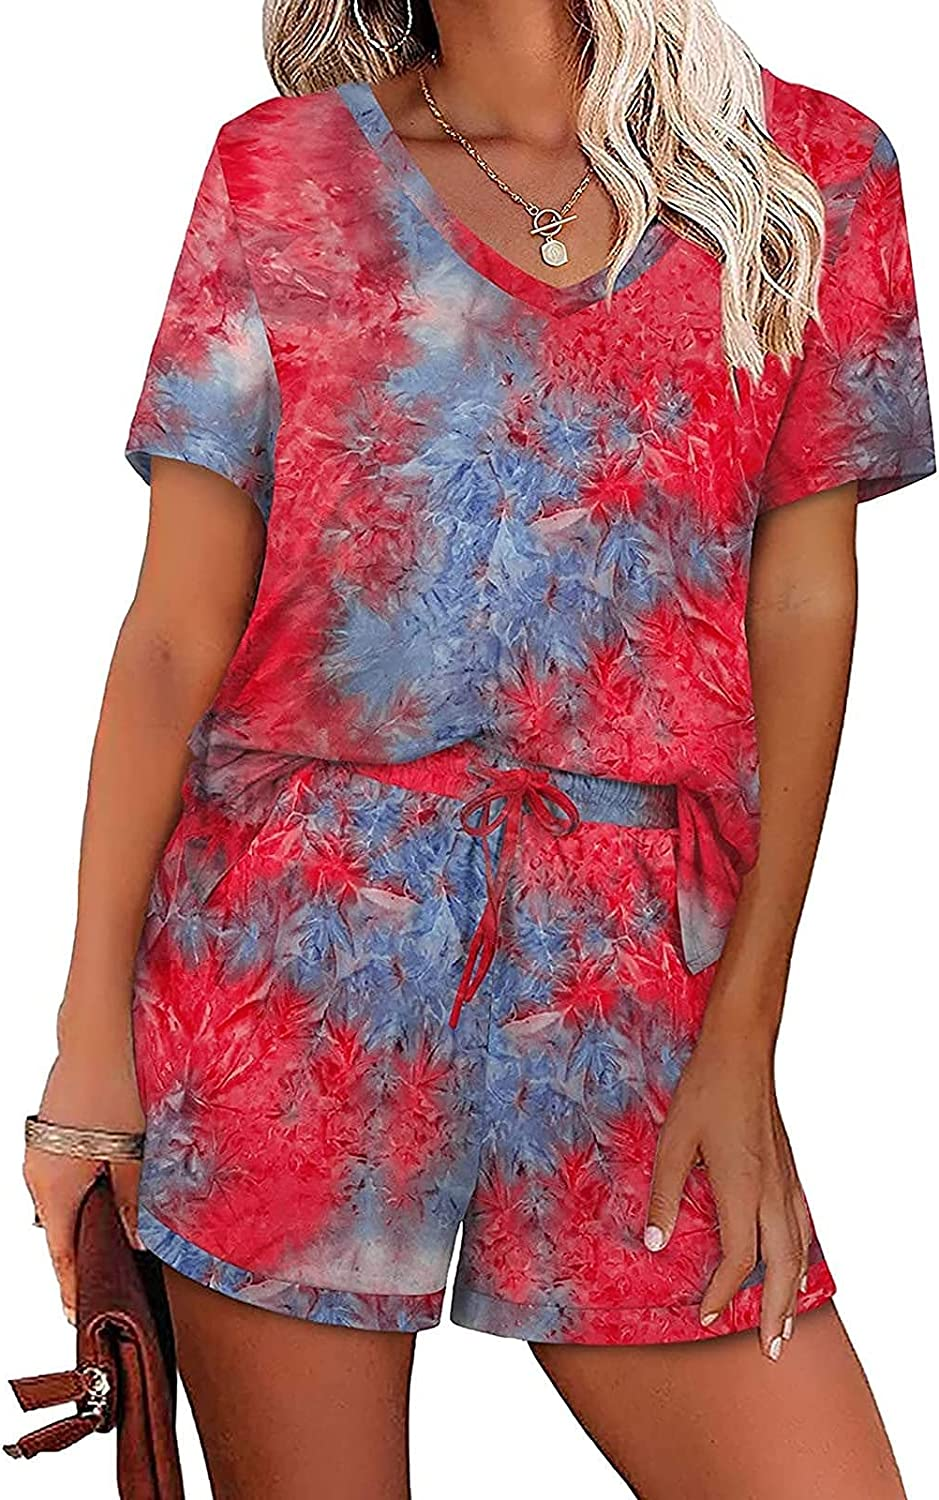 Kanzd Two Piece Outfits for Women Summer Fashion Summer Tie Dye 2 Piece Outfits Tops Lounge Sleepwear Pajamas Sets